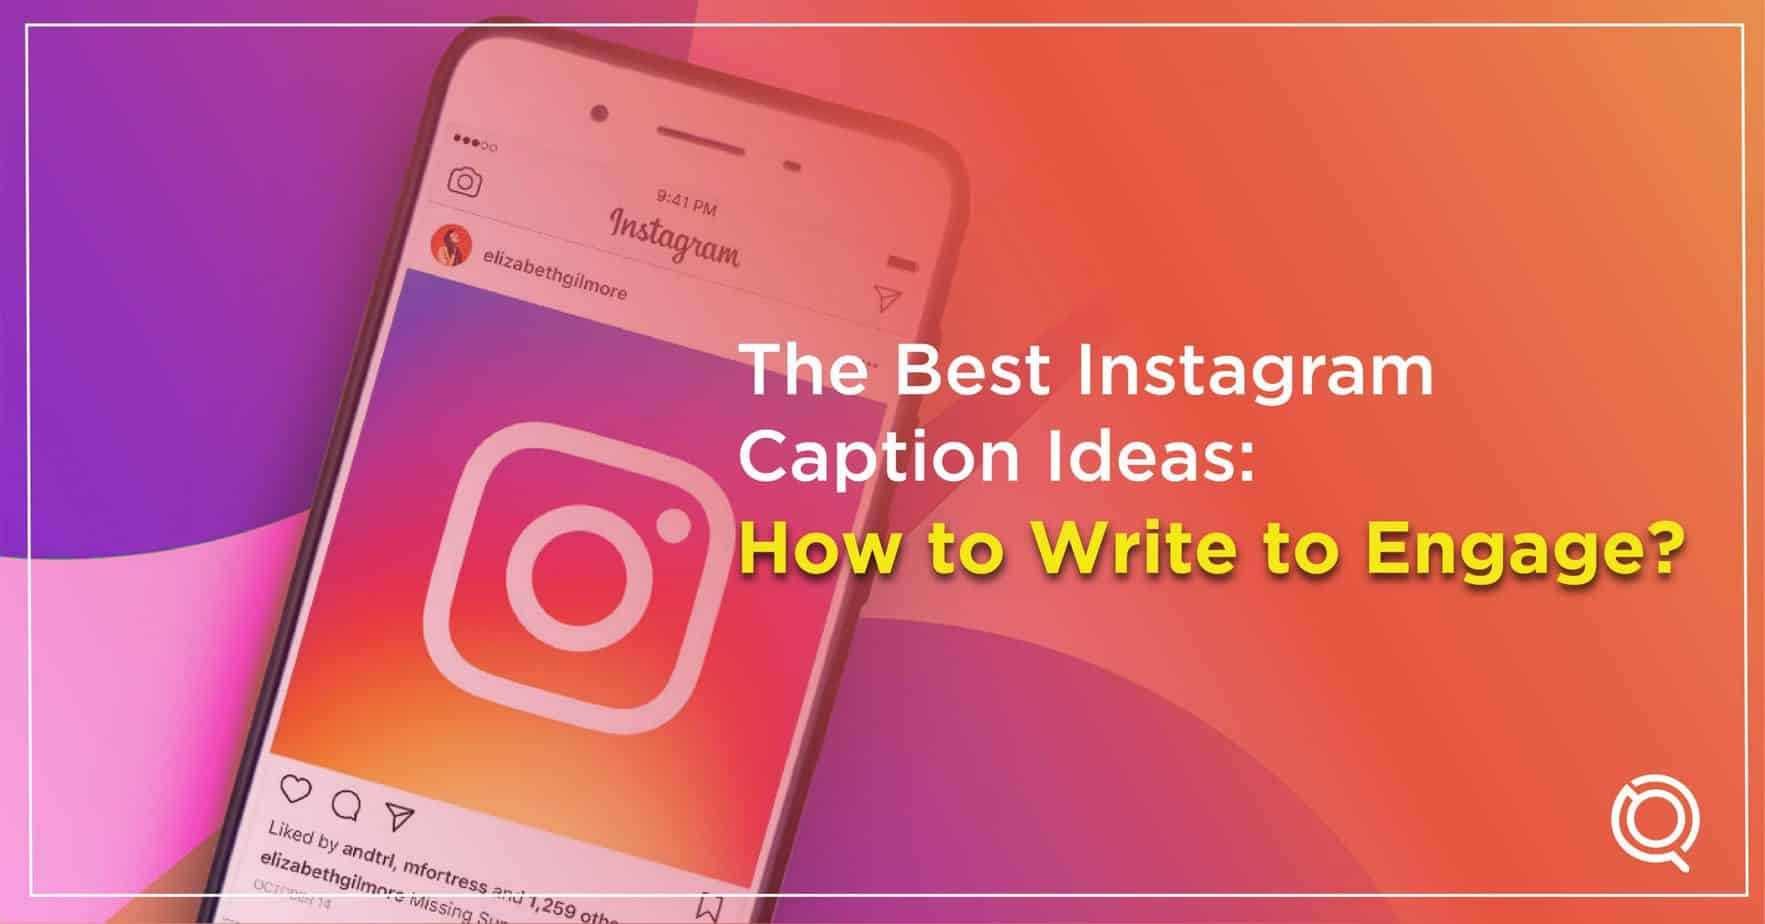 Best Instagram Caption Ideas 9 Tips To Write To Engage With Your Followers - One Search Pro Digital Marketing Agency Malaysia